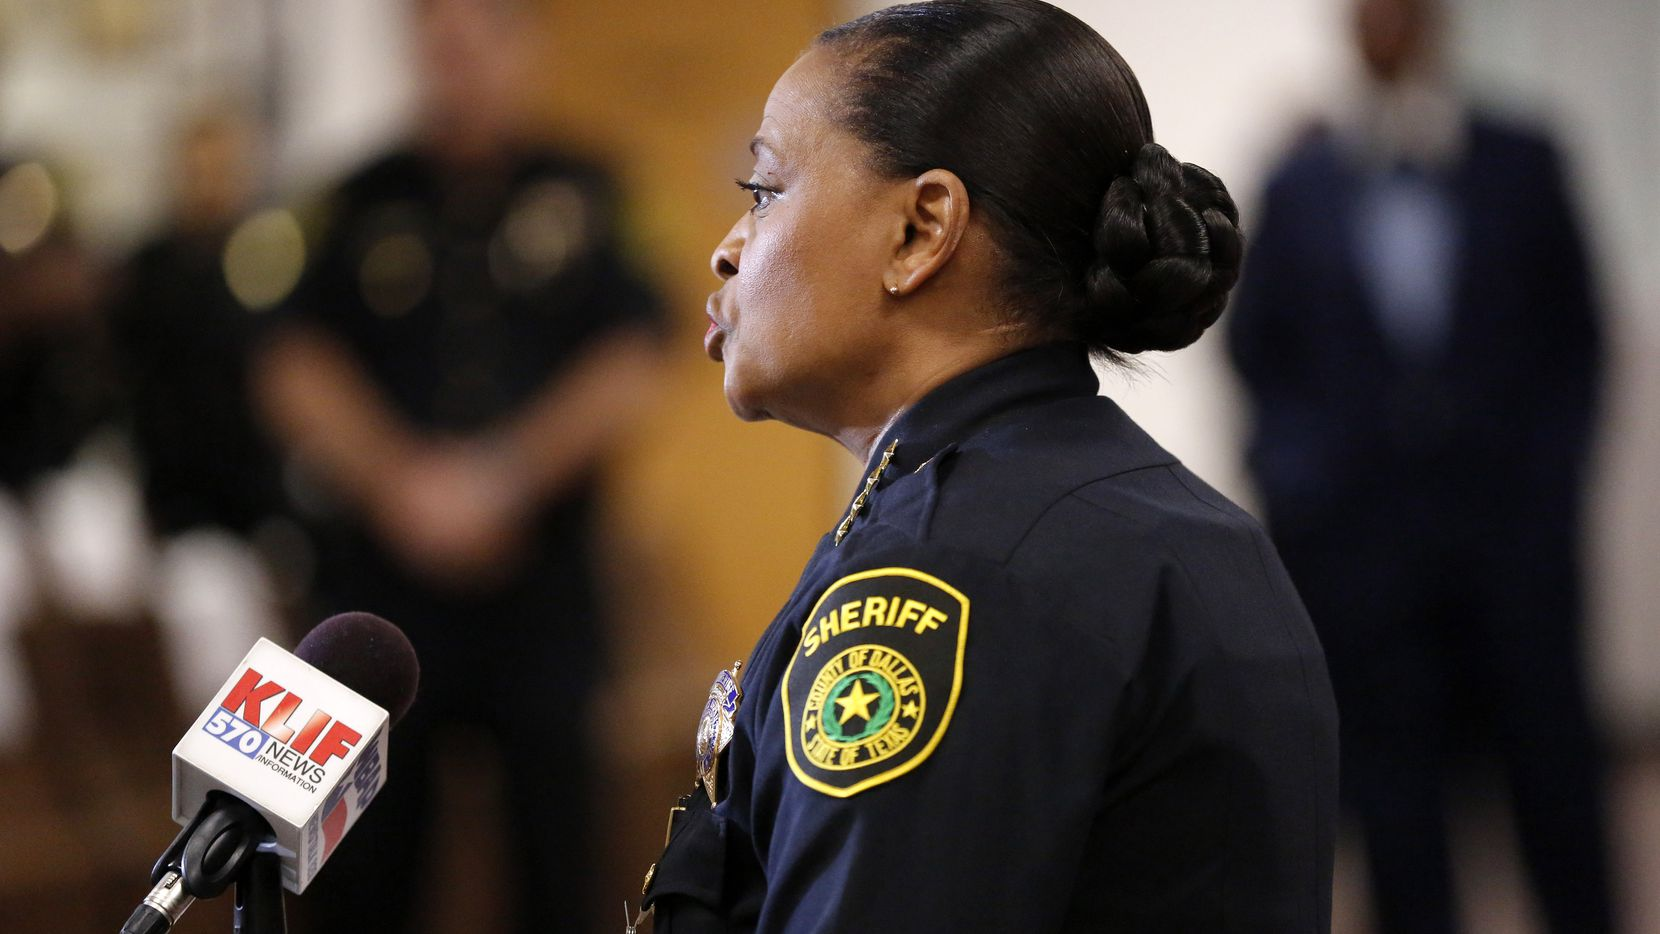 Dallas County Sheriff Marian Brown announces during a press conference at the Frank Crowley Courthouse, Wednesday, March 25, 2020, that a Dallas County jail inmate who had been in custody since December tested positive for the new coronavirus.